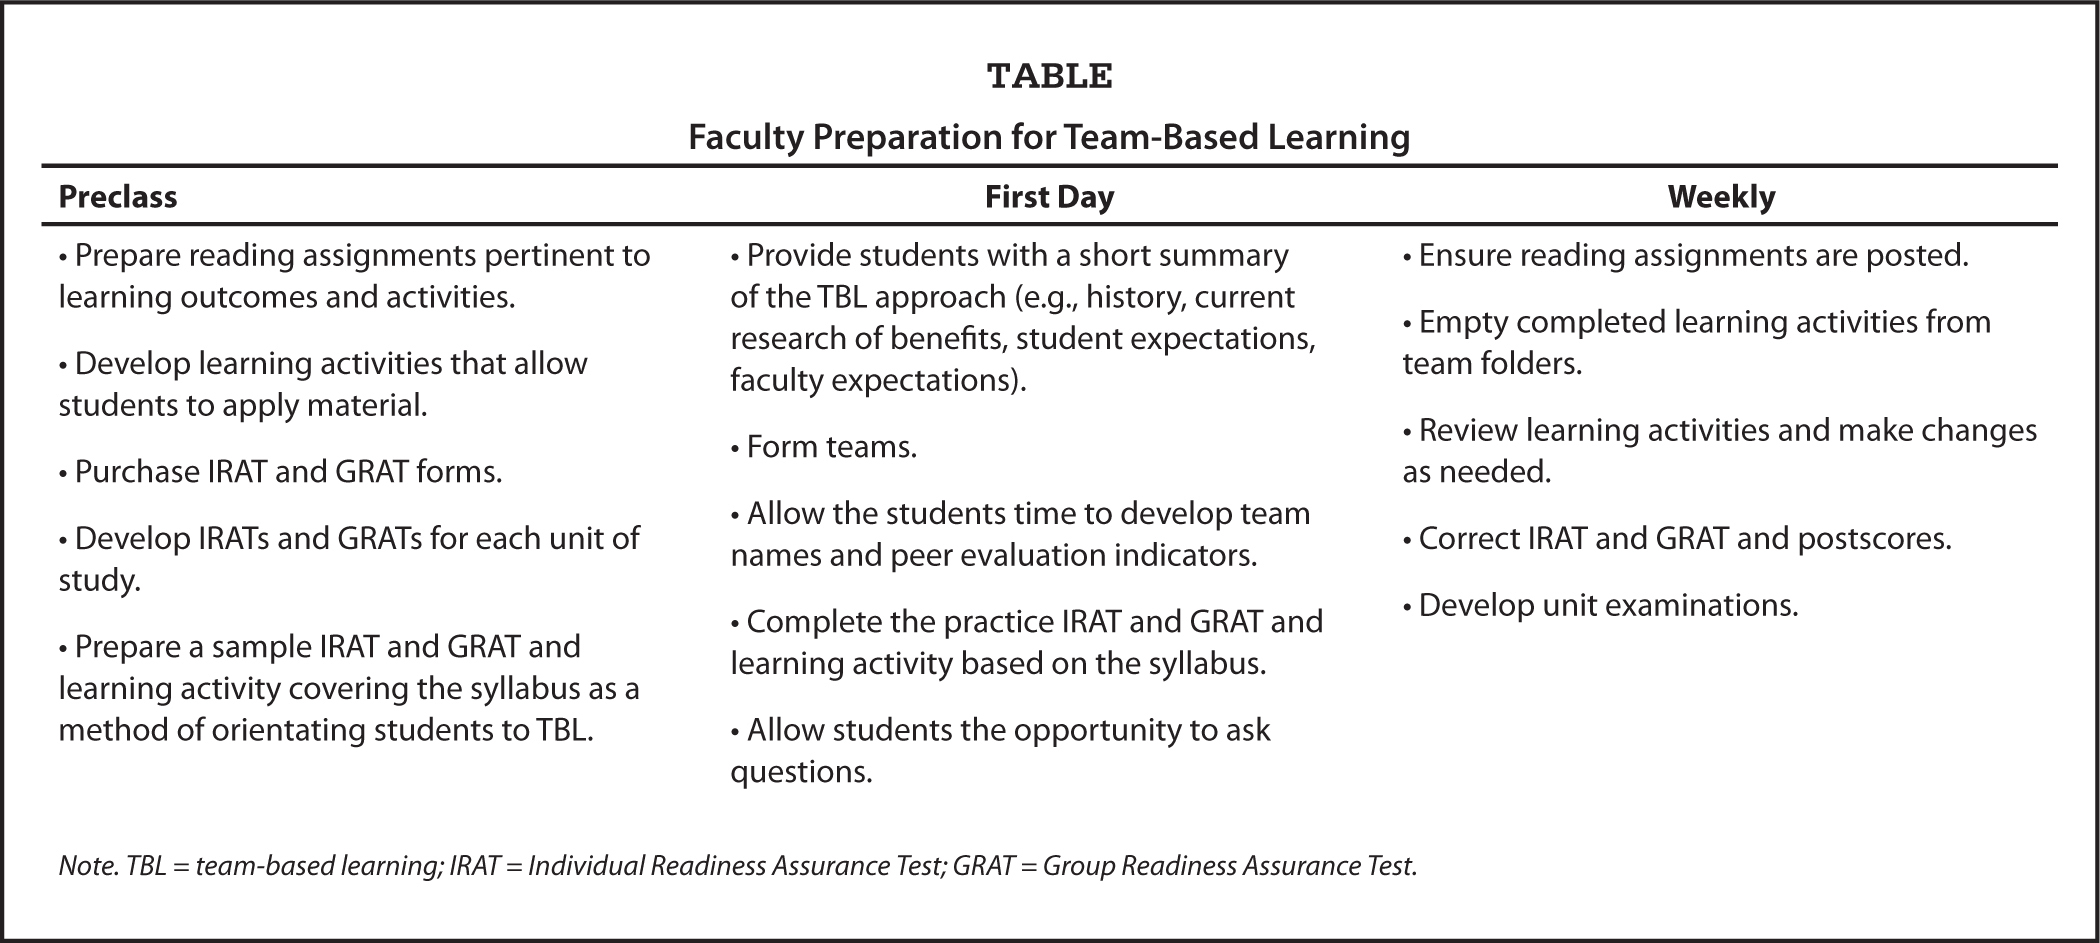 Faculty Preparation for Team-Based Learning